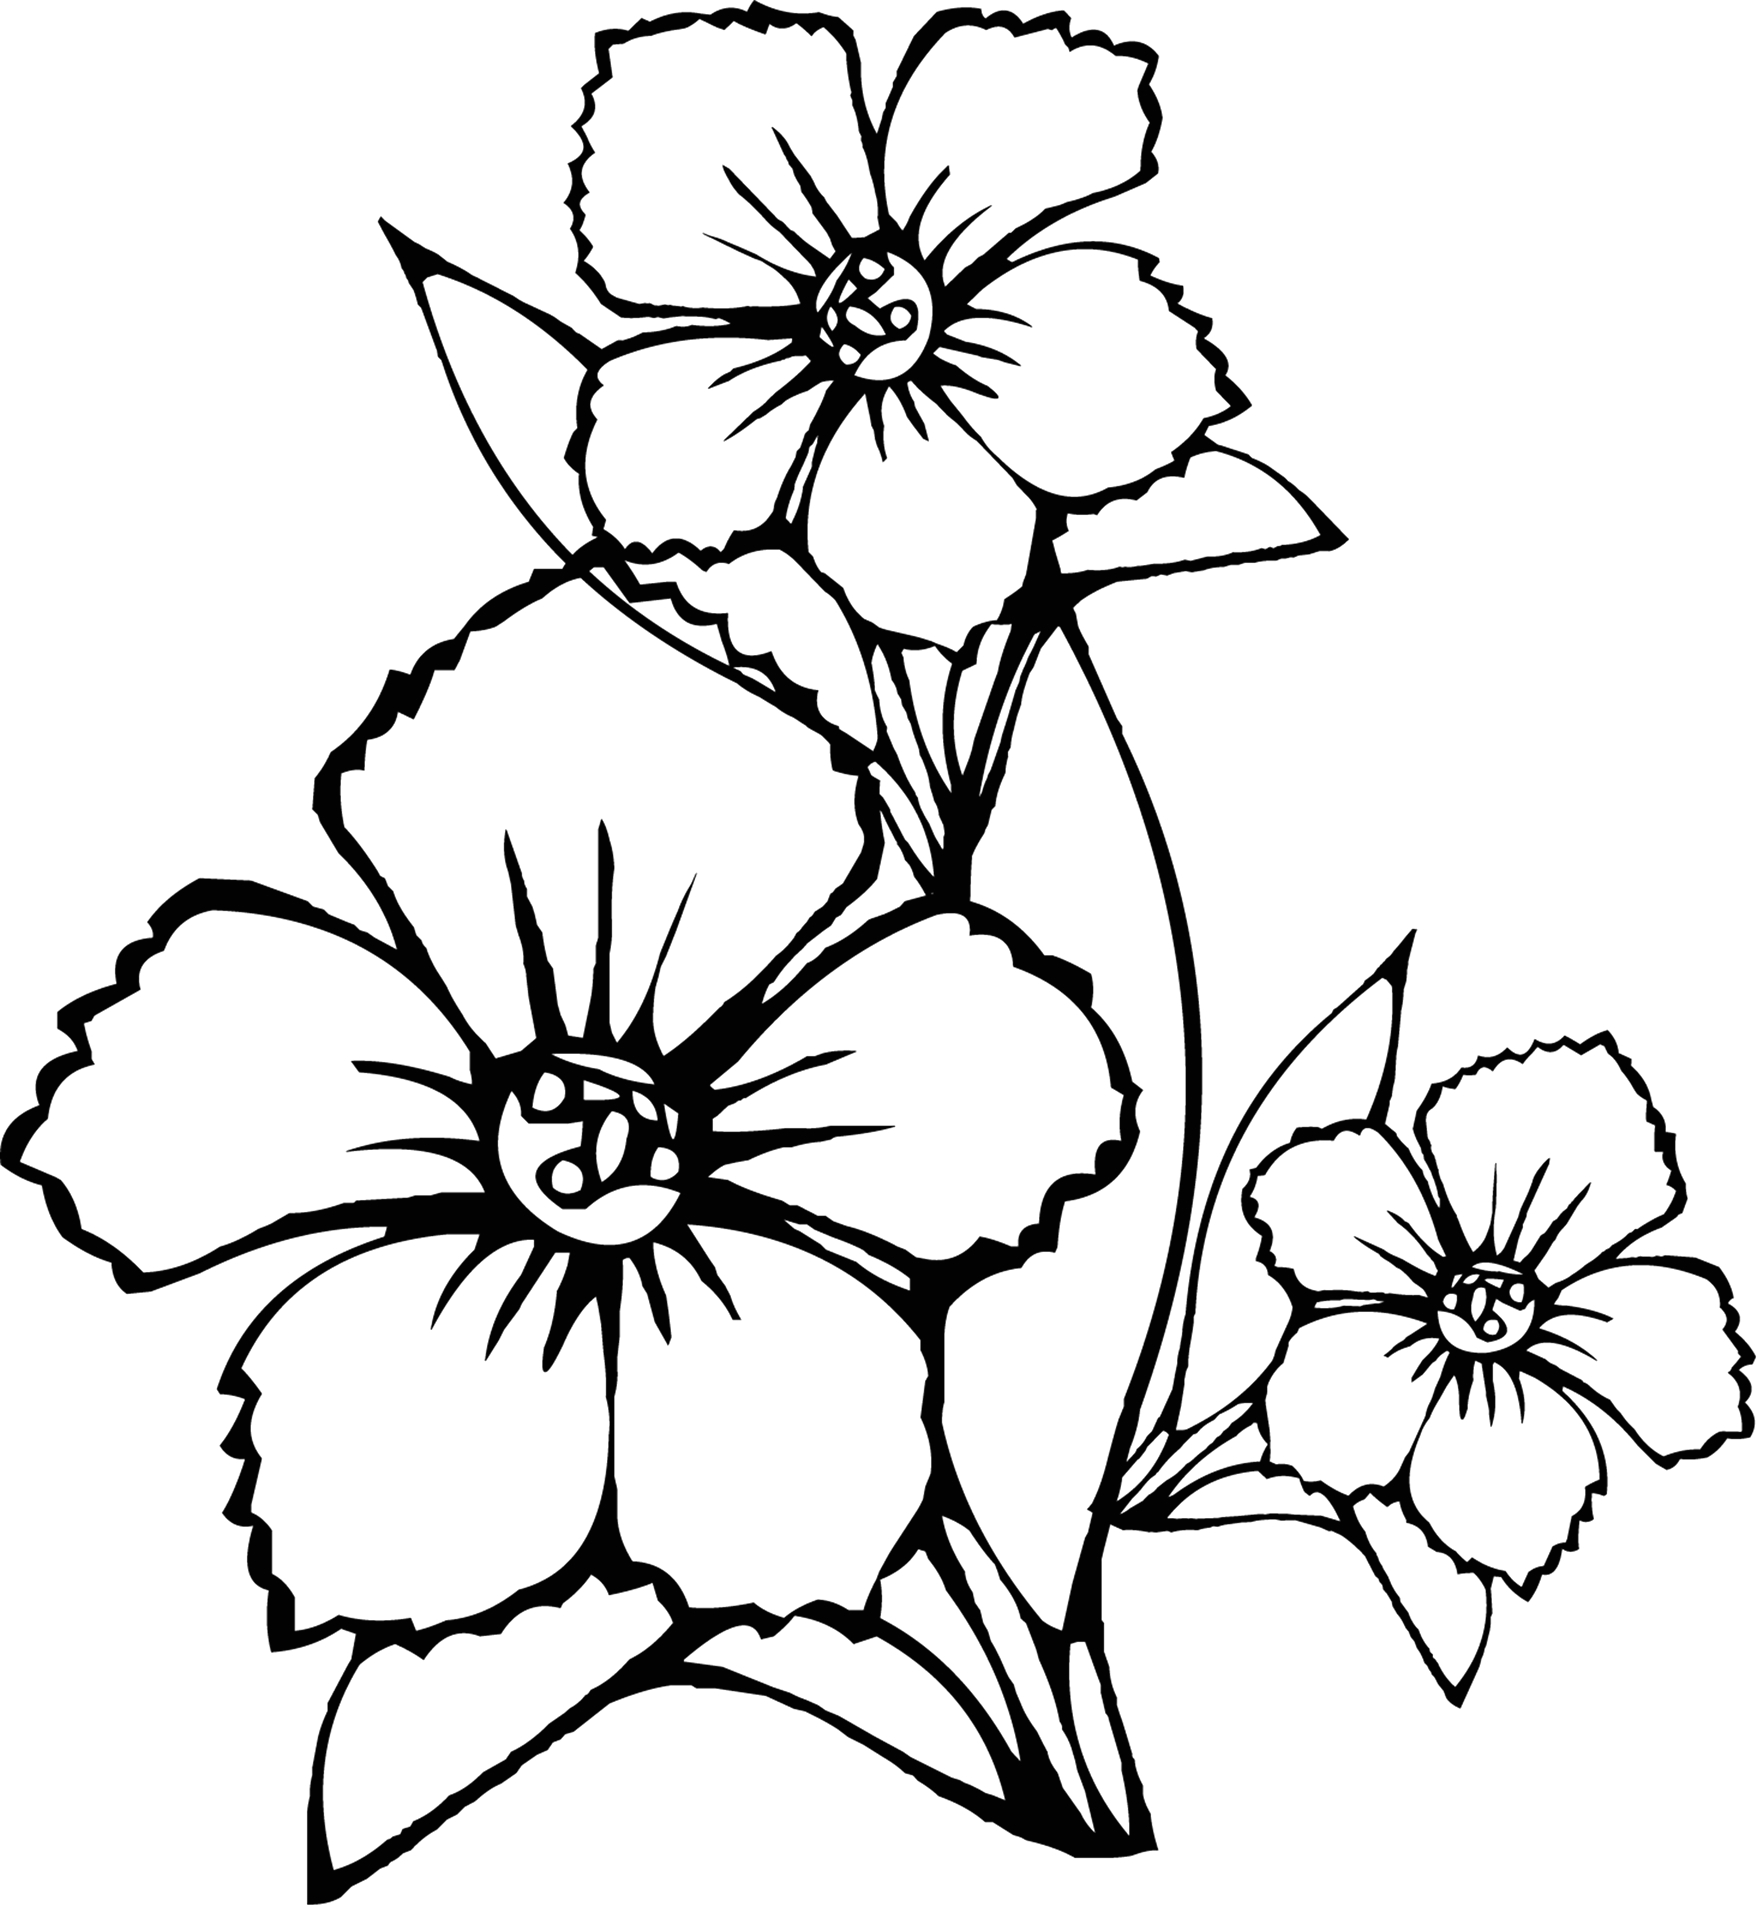 Free Coloring Pages Of Flowers for Kids Free Printable Flower Coloring Pages for Kids Best